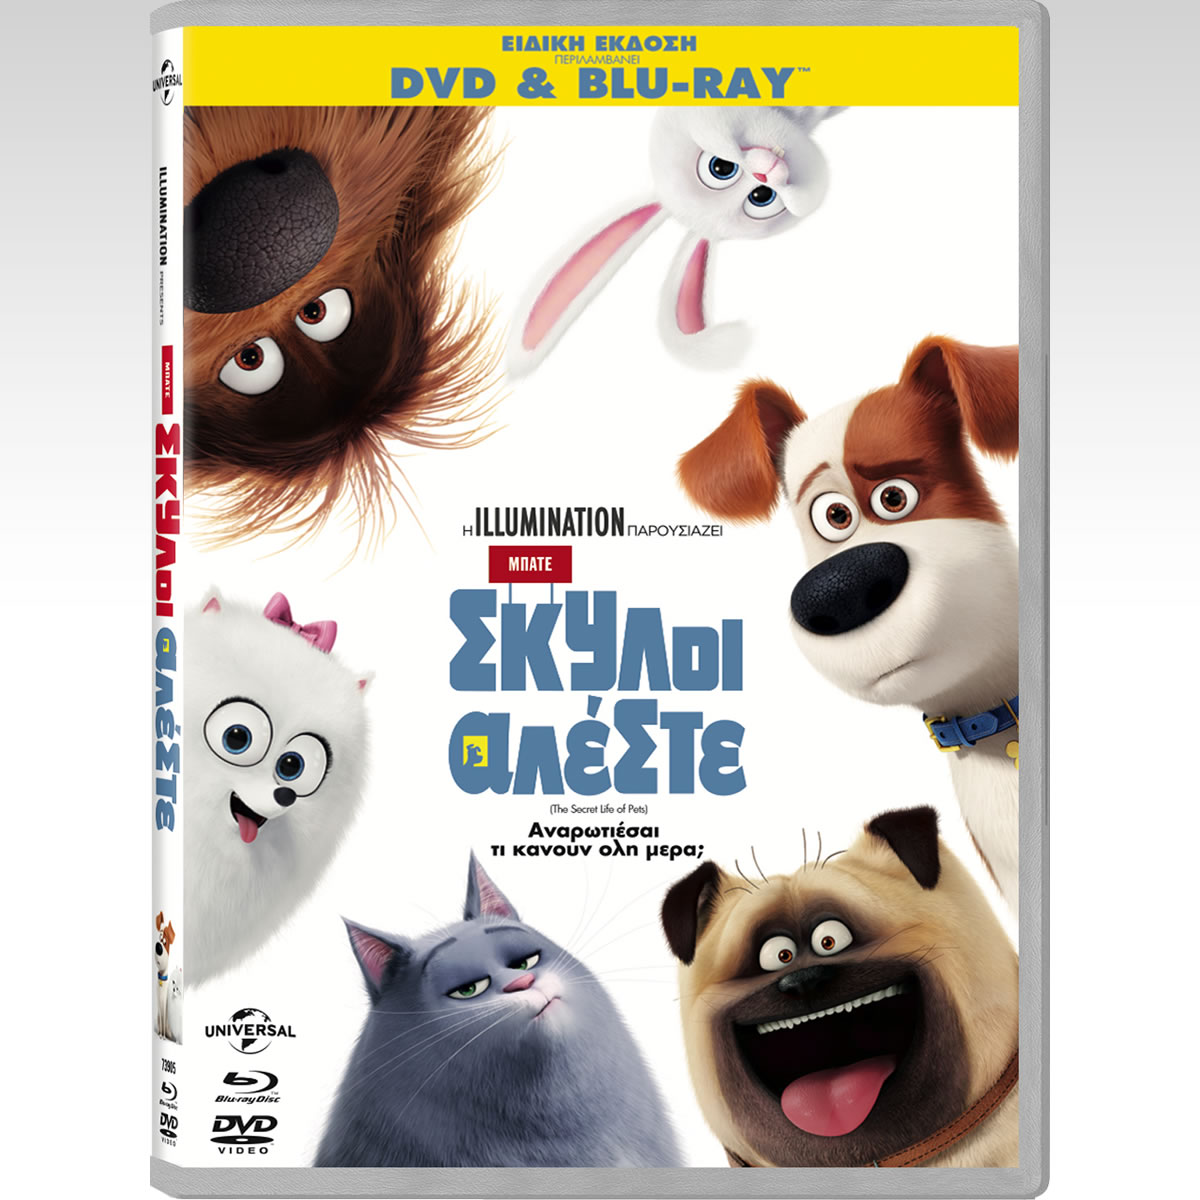 THE SECRET LIFE OF PETS Special Edition Combo (DVD + BLU-RAY)